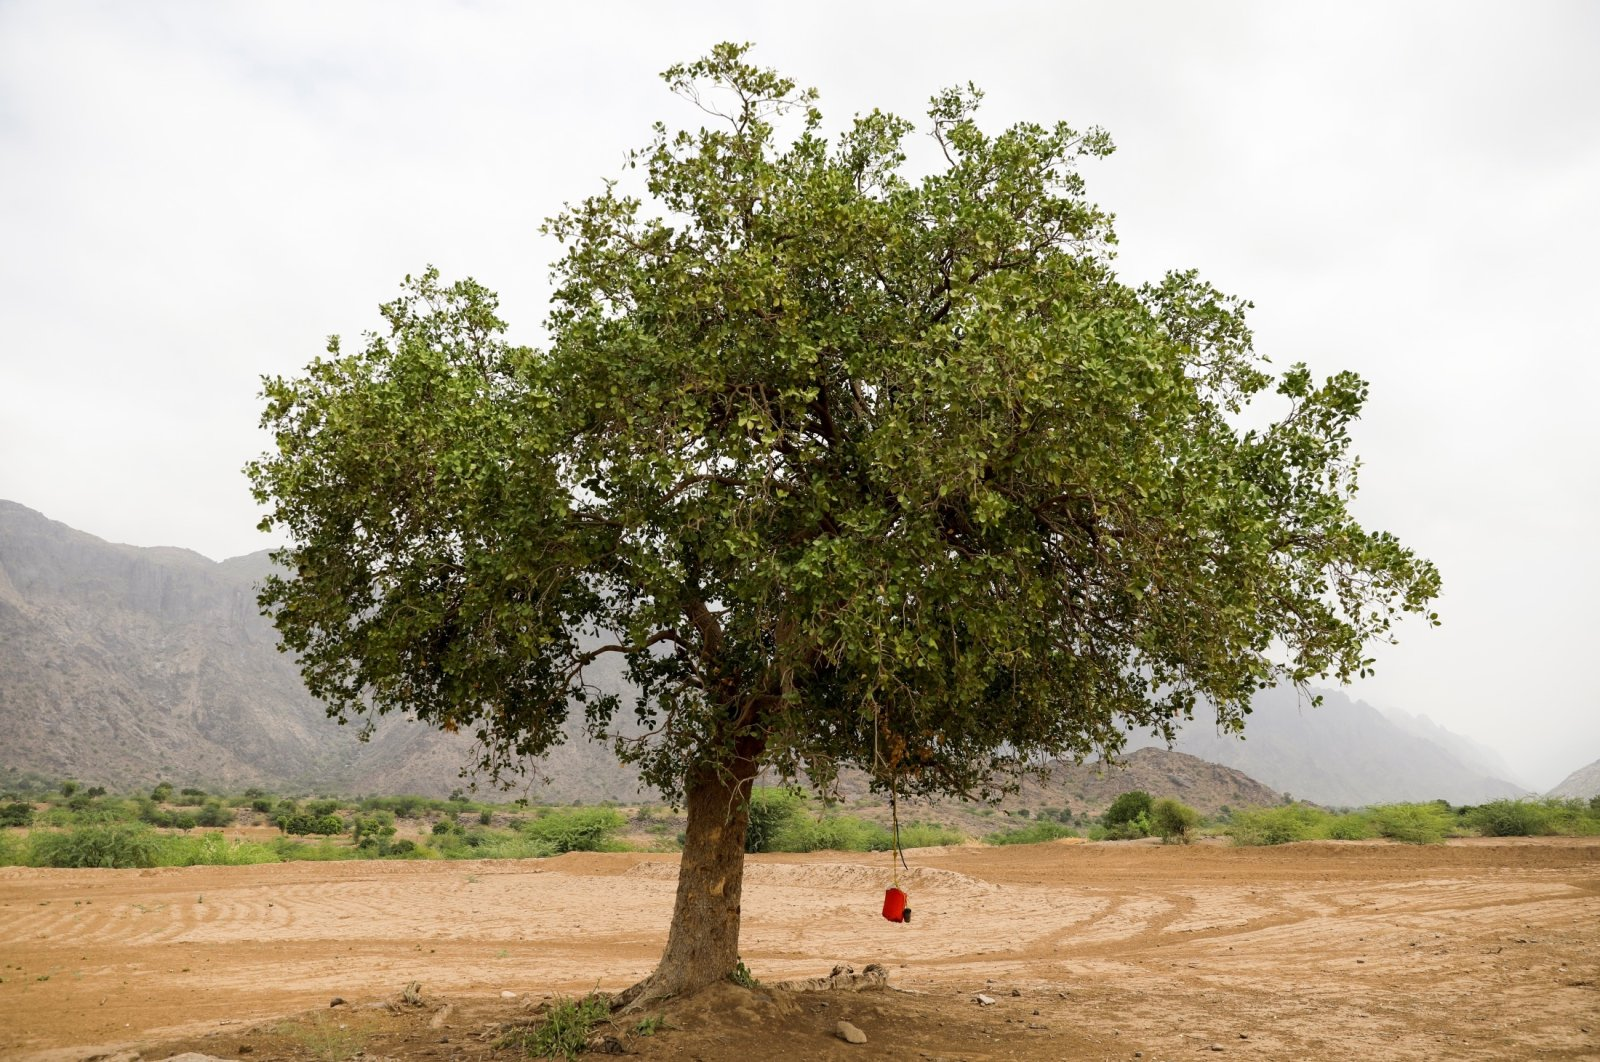 Free drinking water is hung on a tree in Khamis Banisaad district of al-Mahweet province, Yemen, June 23, 2021. (Reuters Photo)